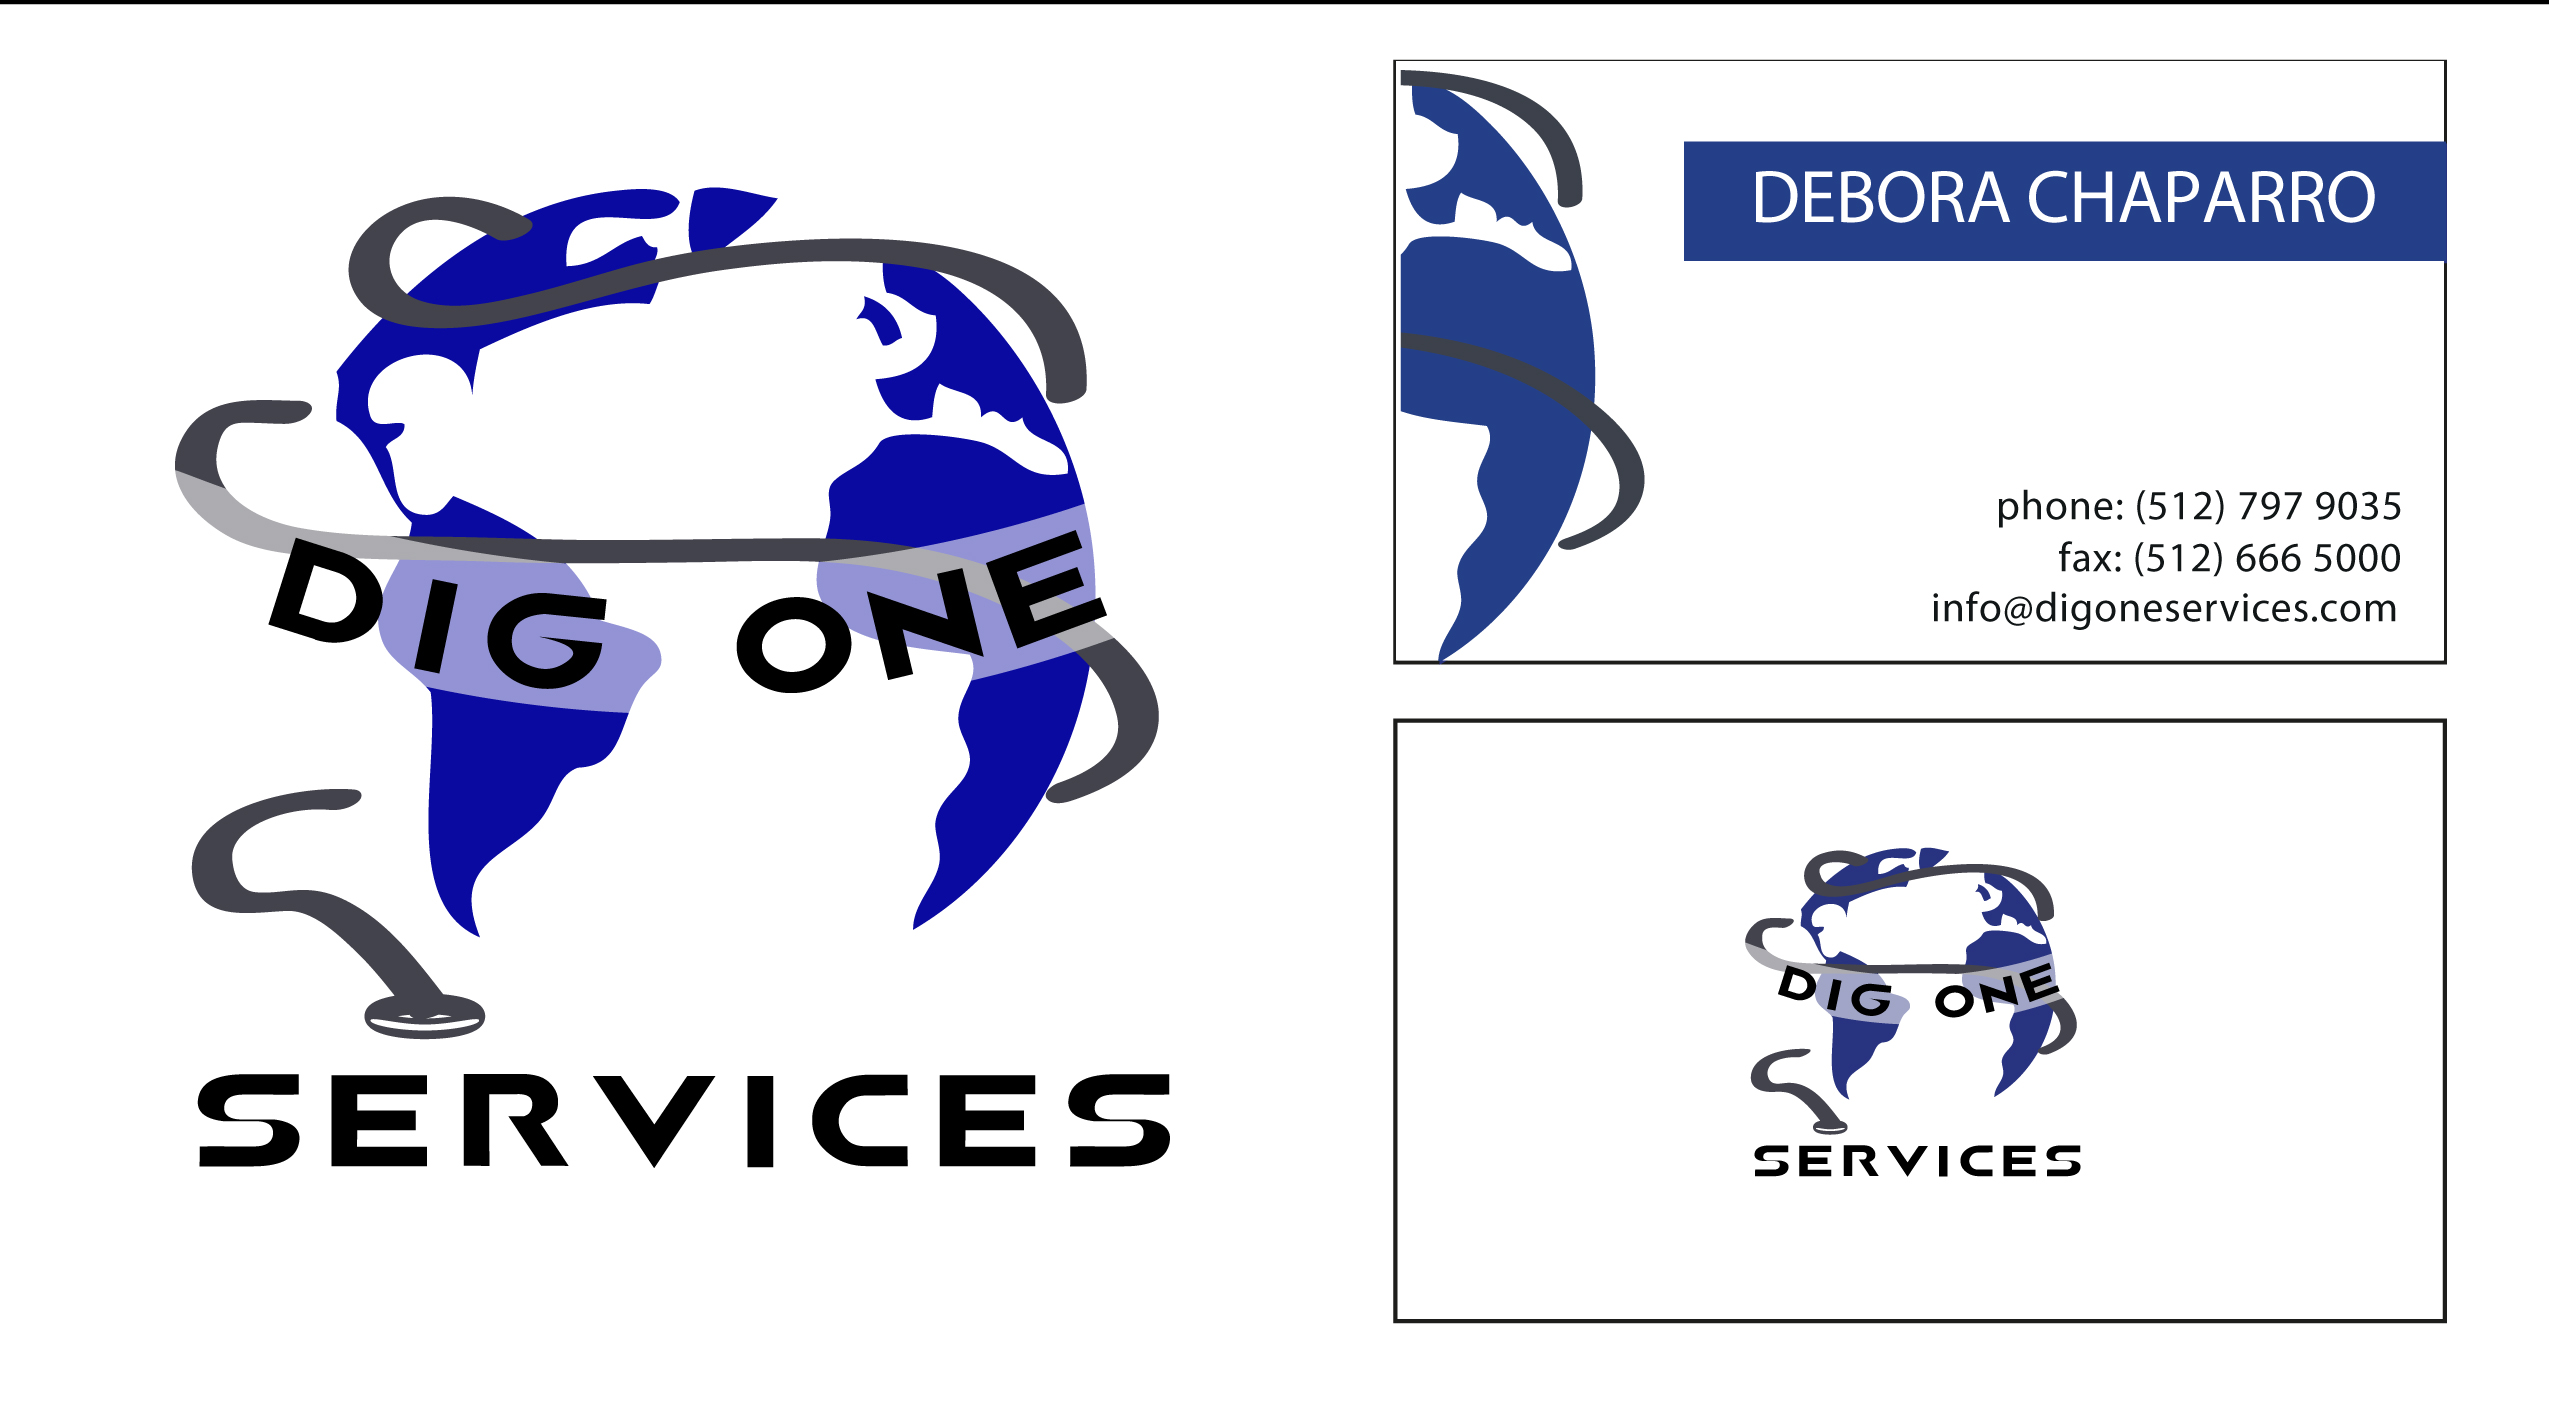 DIG ONE SERVICES LOGO